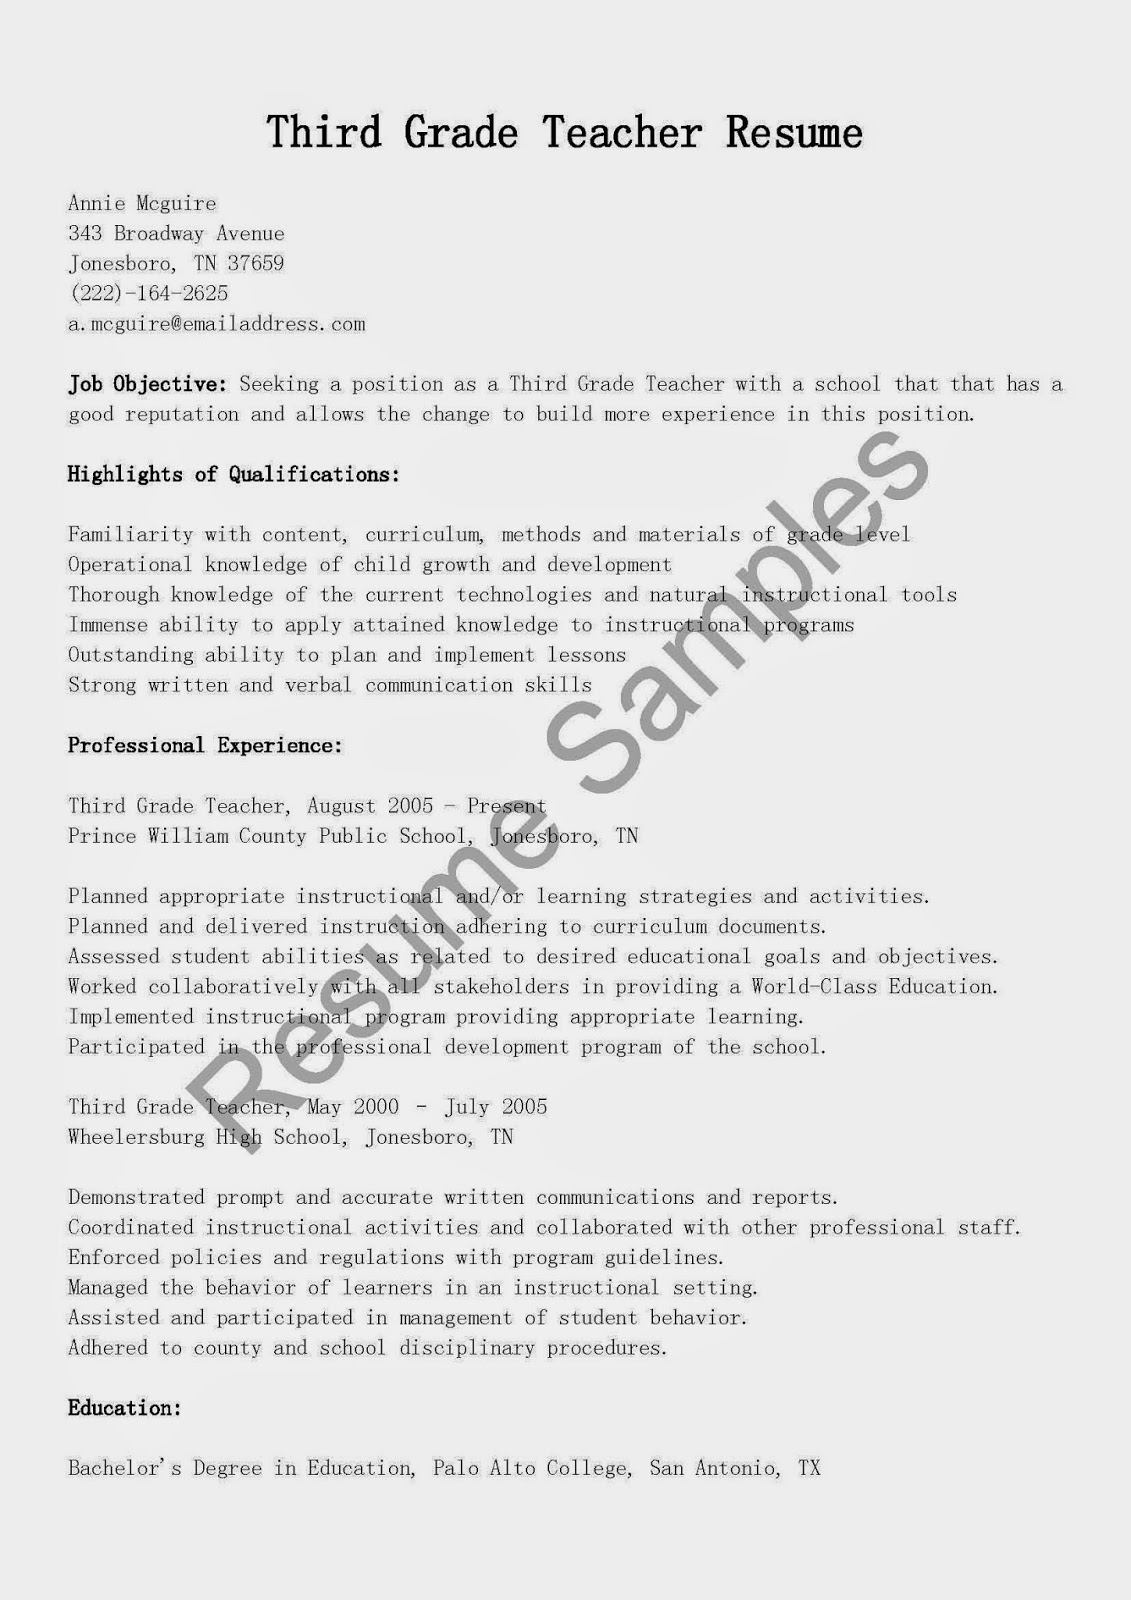 Art Teacher Resume Example Template Sample Teaching Design Job INPIEQ  Instructor Resume  Art Teacher Resume Examples